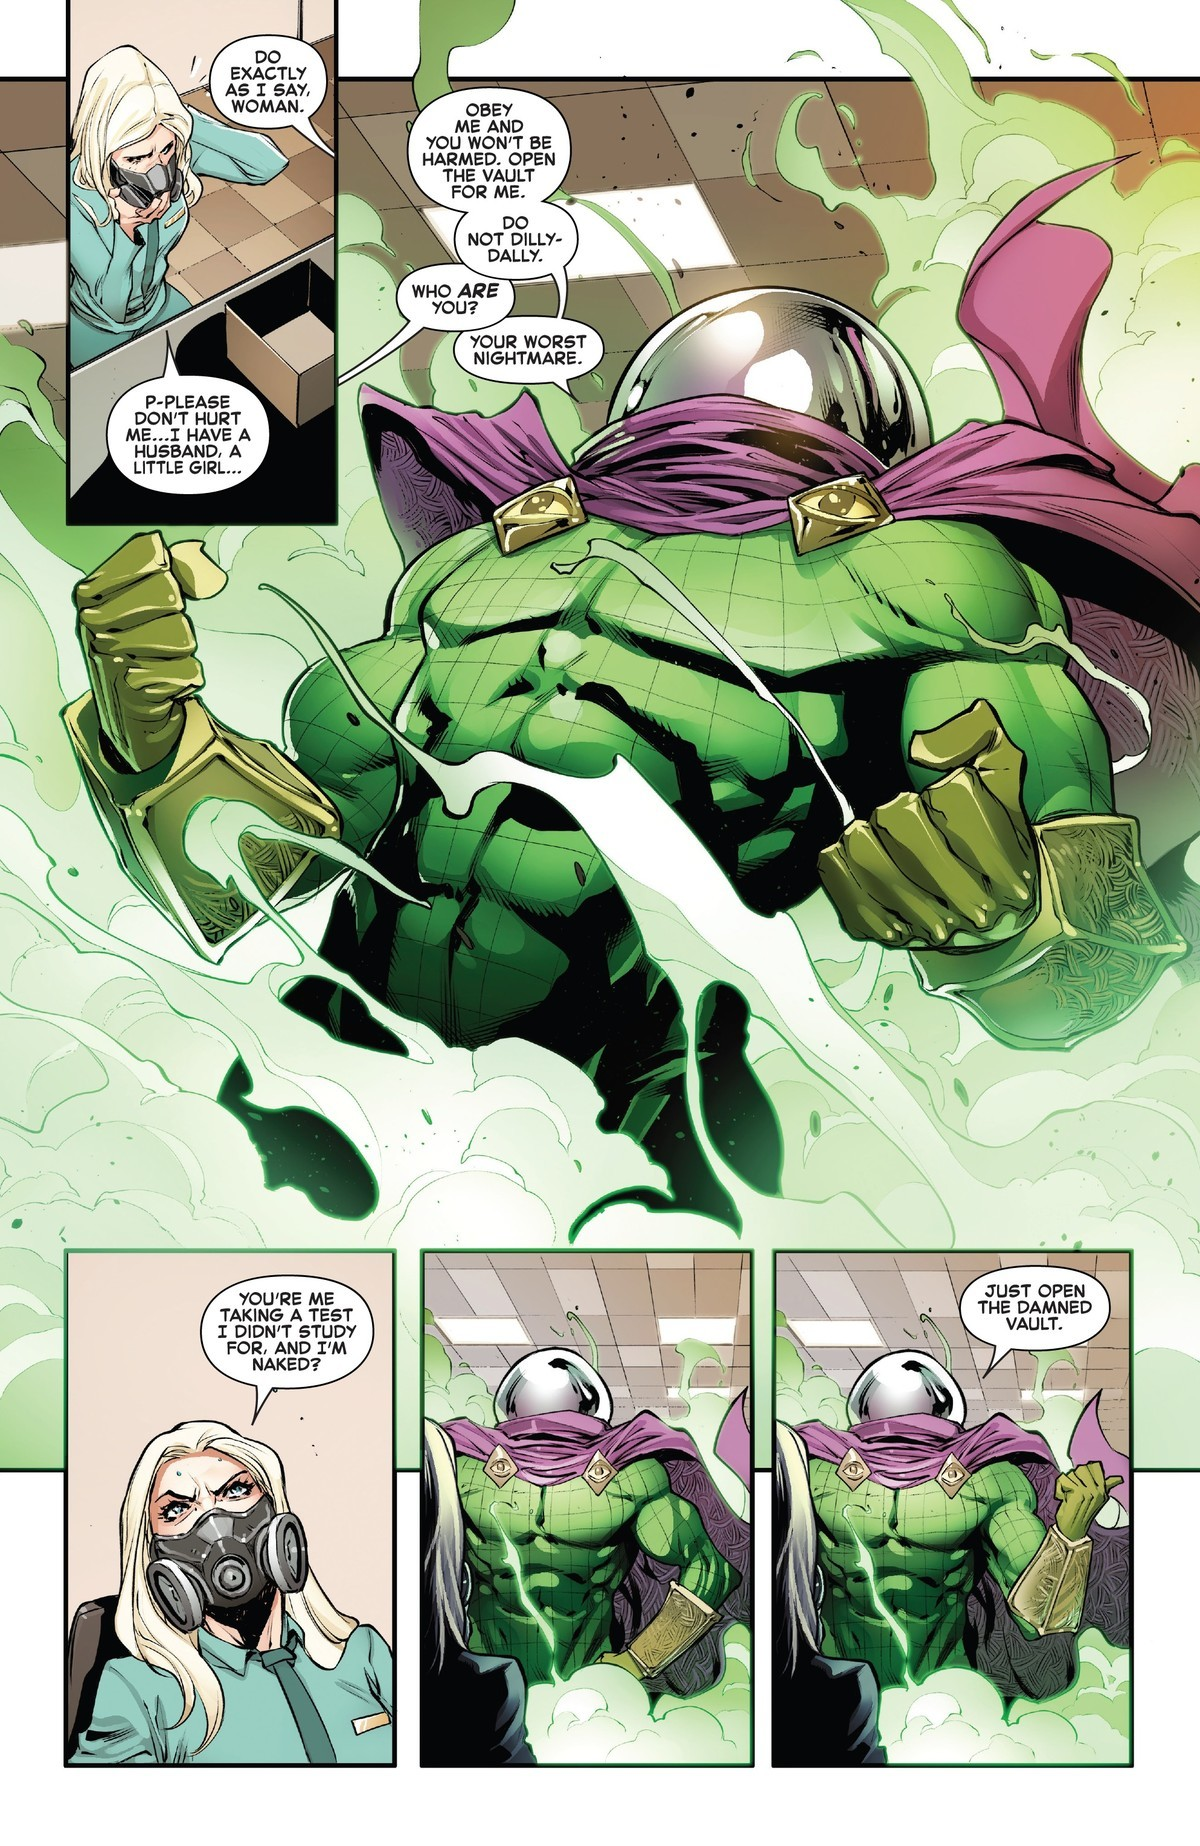 Your Worst htmare. .. The fact that everyone relentlessly sandbags Mysterio at every opportunity fills me with hope for the future of Marvel Comics. It may be an unfounded hope, and